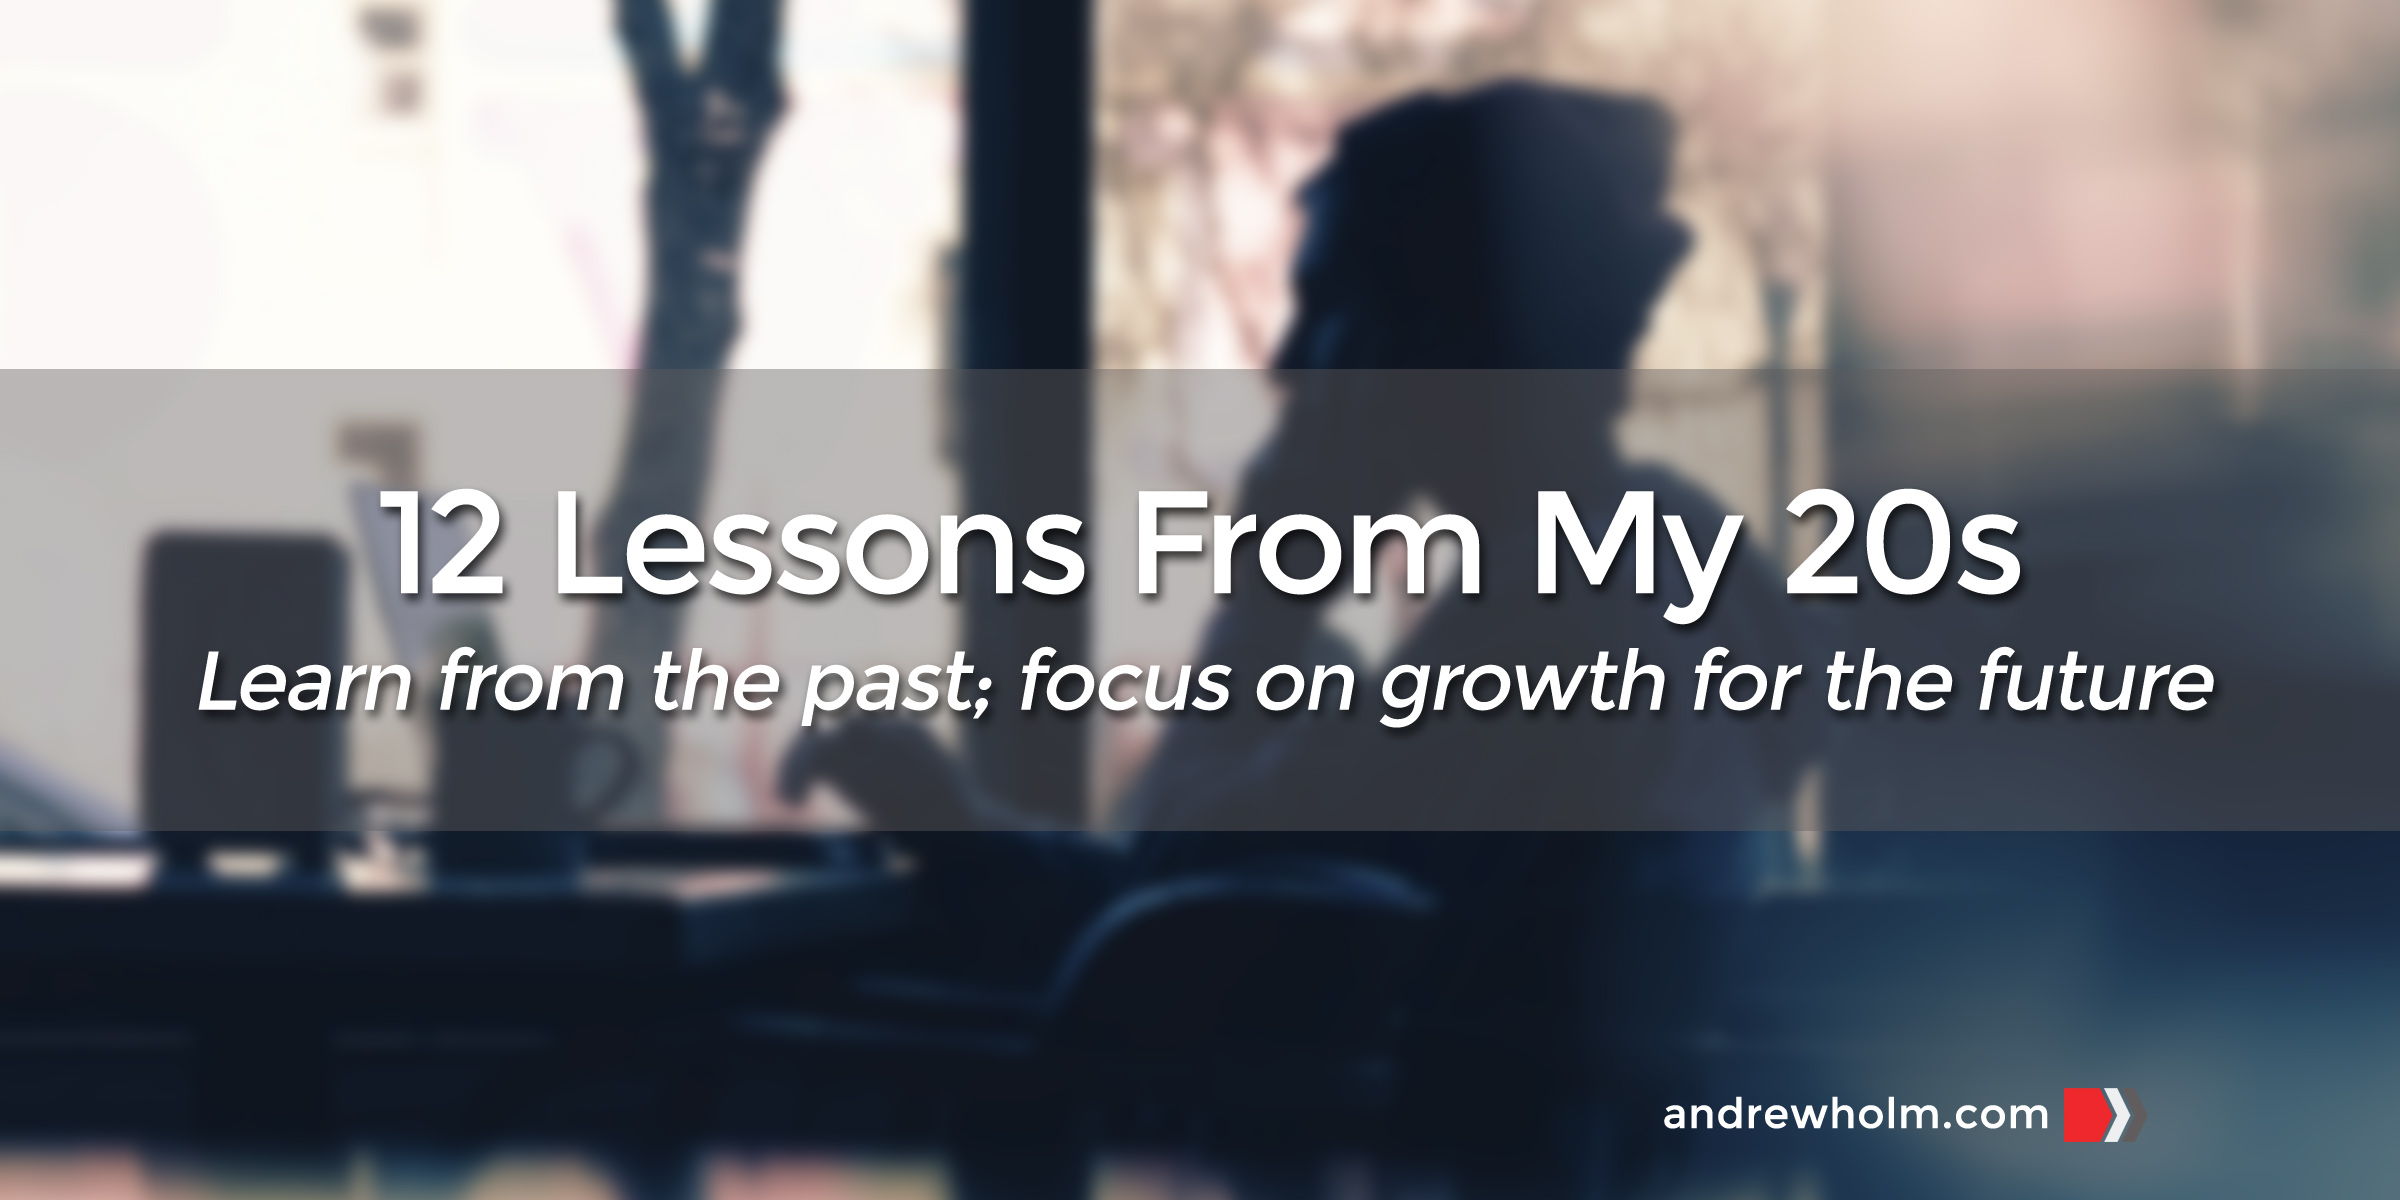 12 Lessons from My 20s